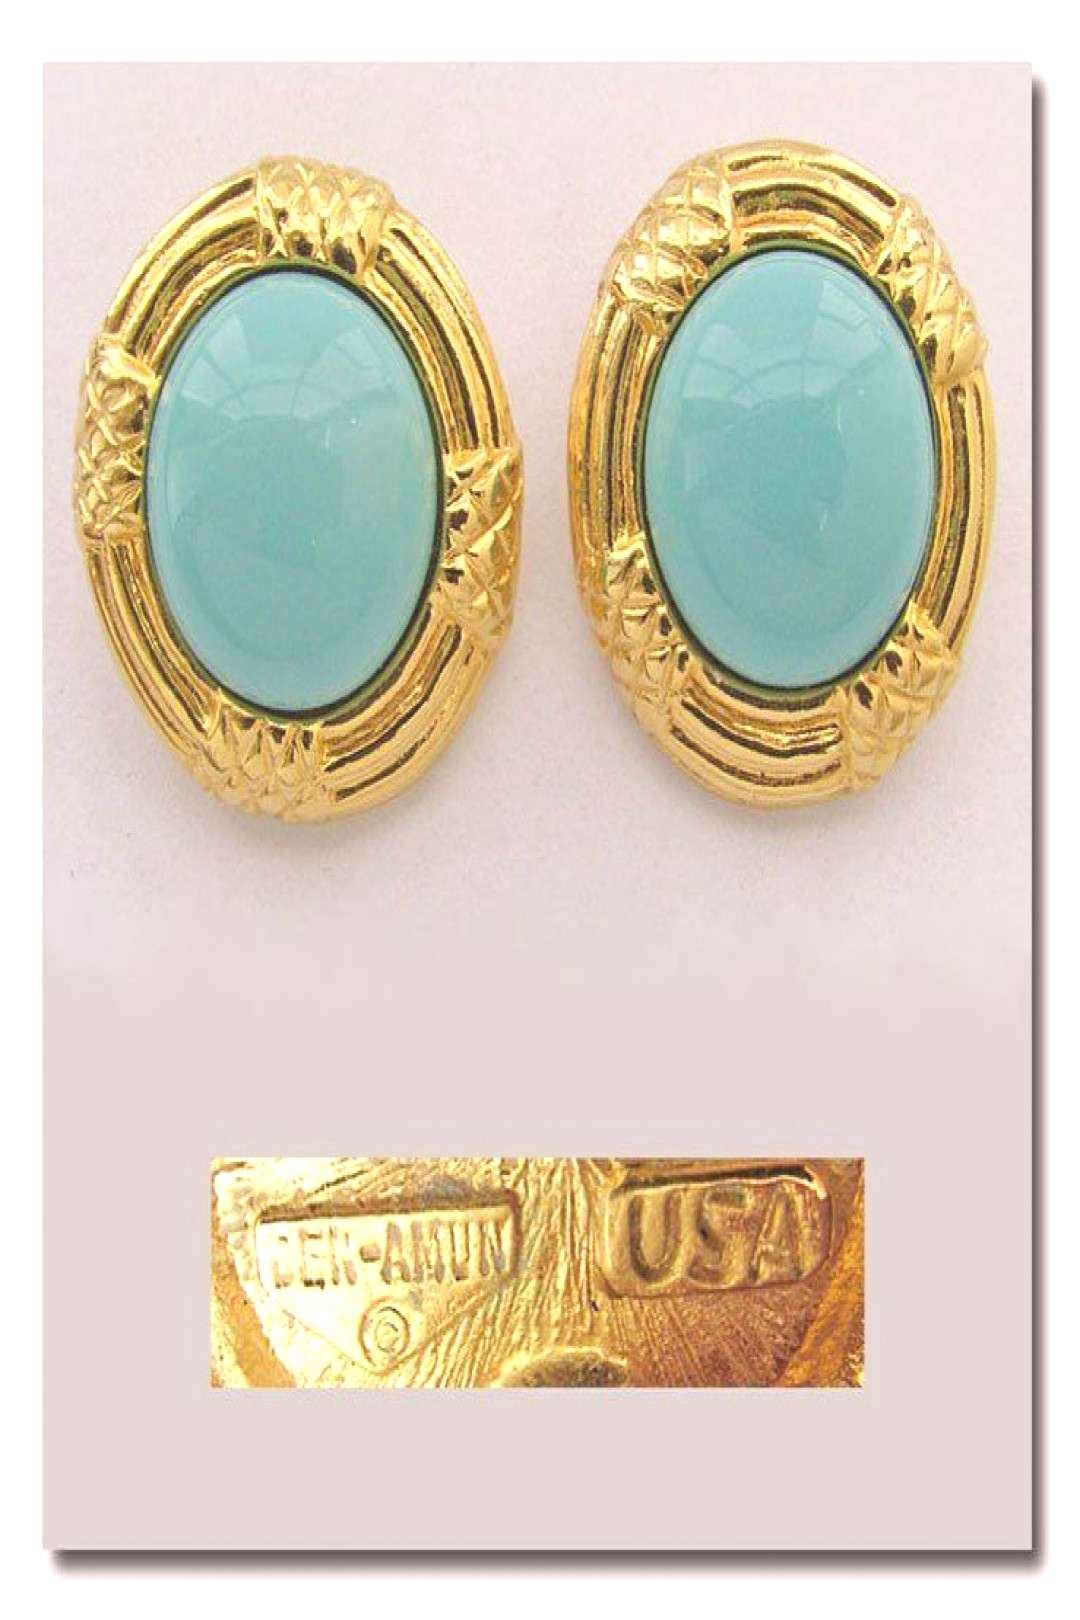 made of gold-plated metal with large turquoise glass cabochons. $27 includes US shipping. More pics